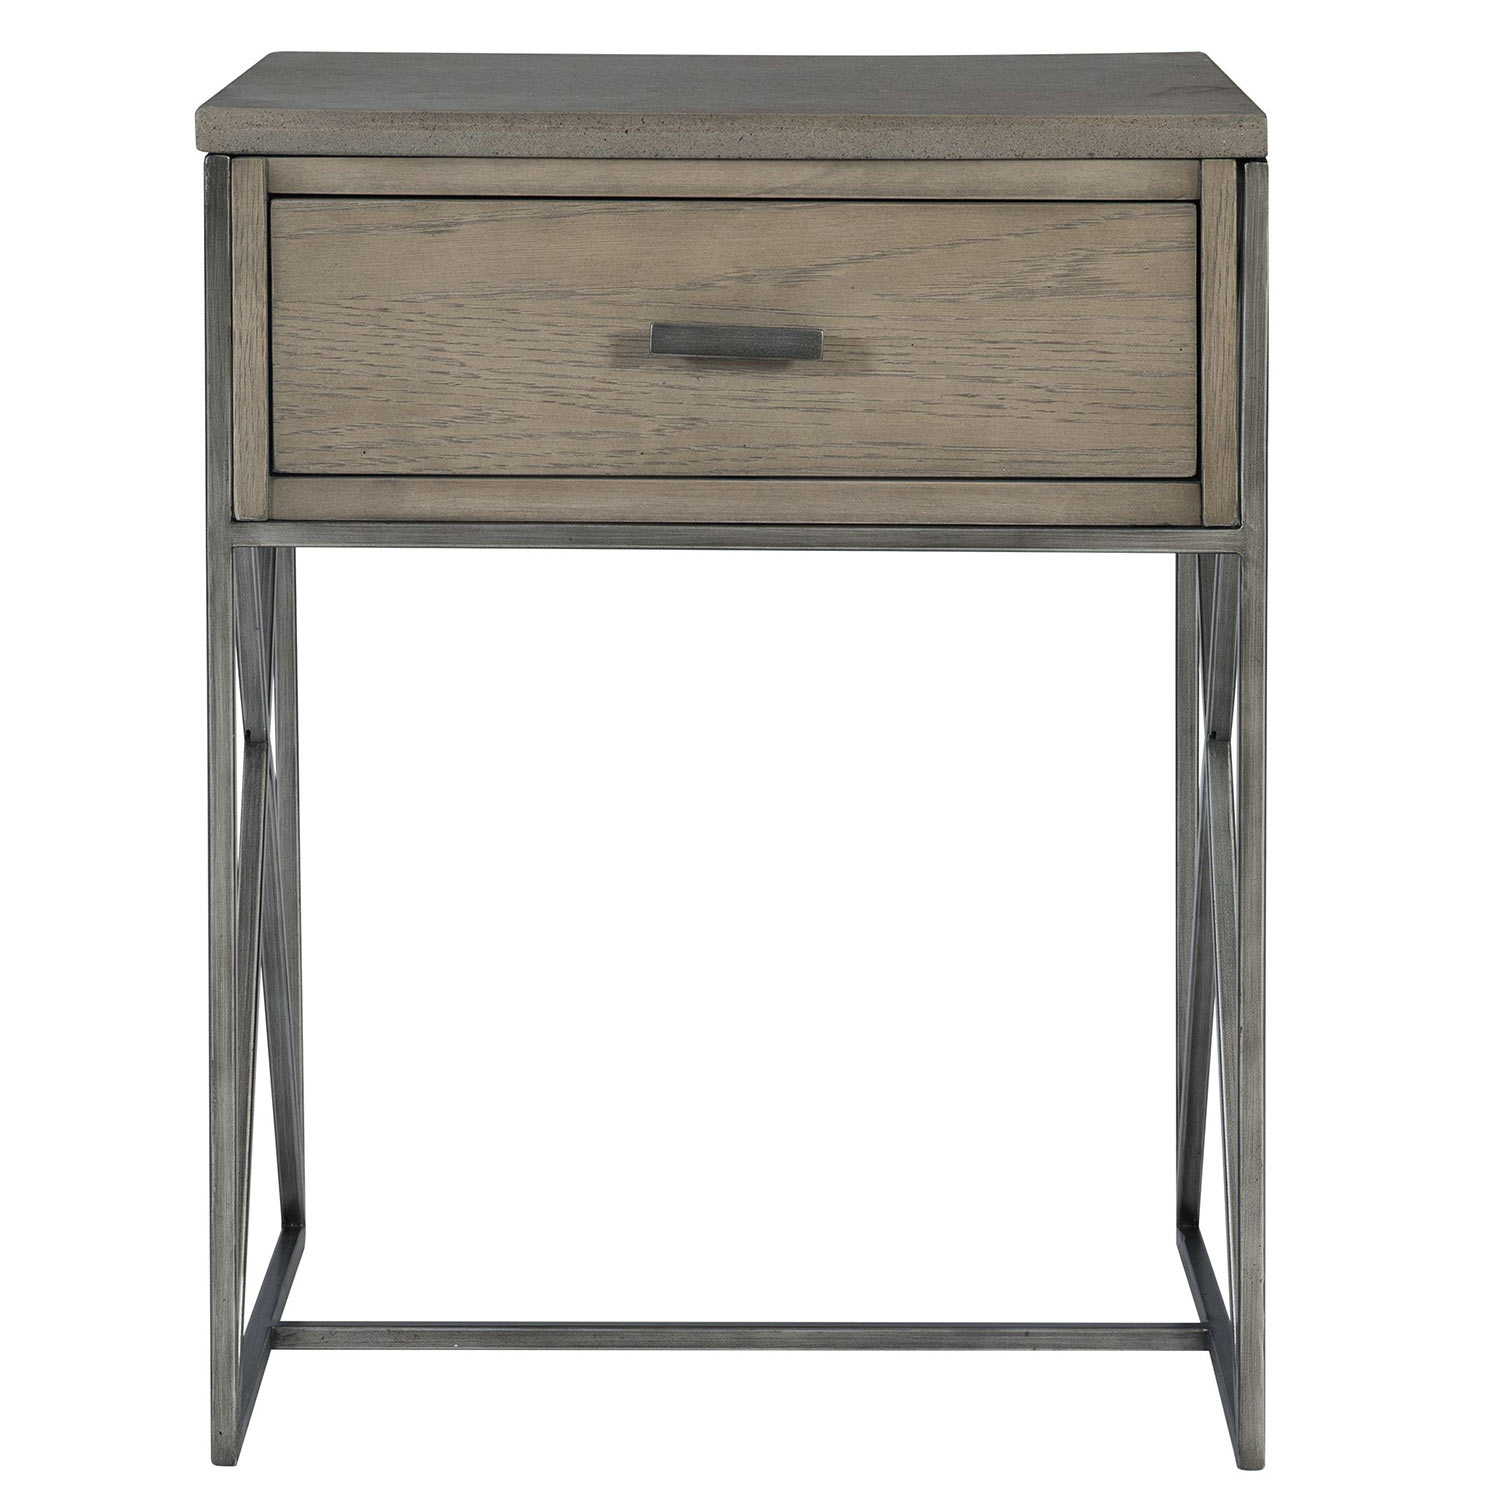 Uttermost Cartwright Side Table - Gray